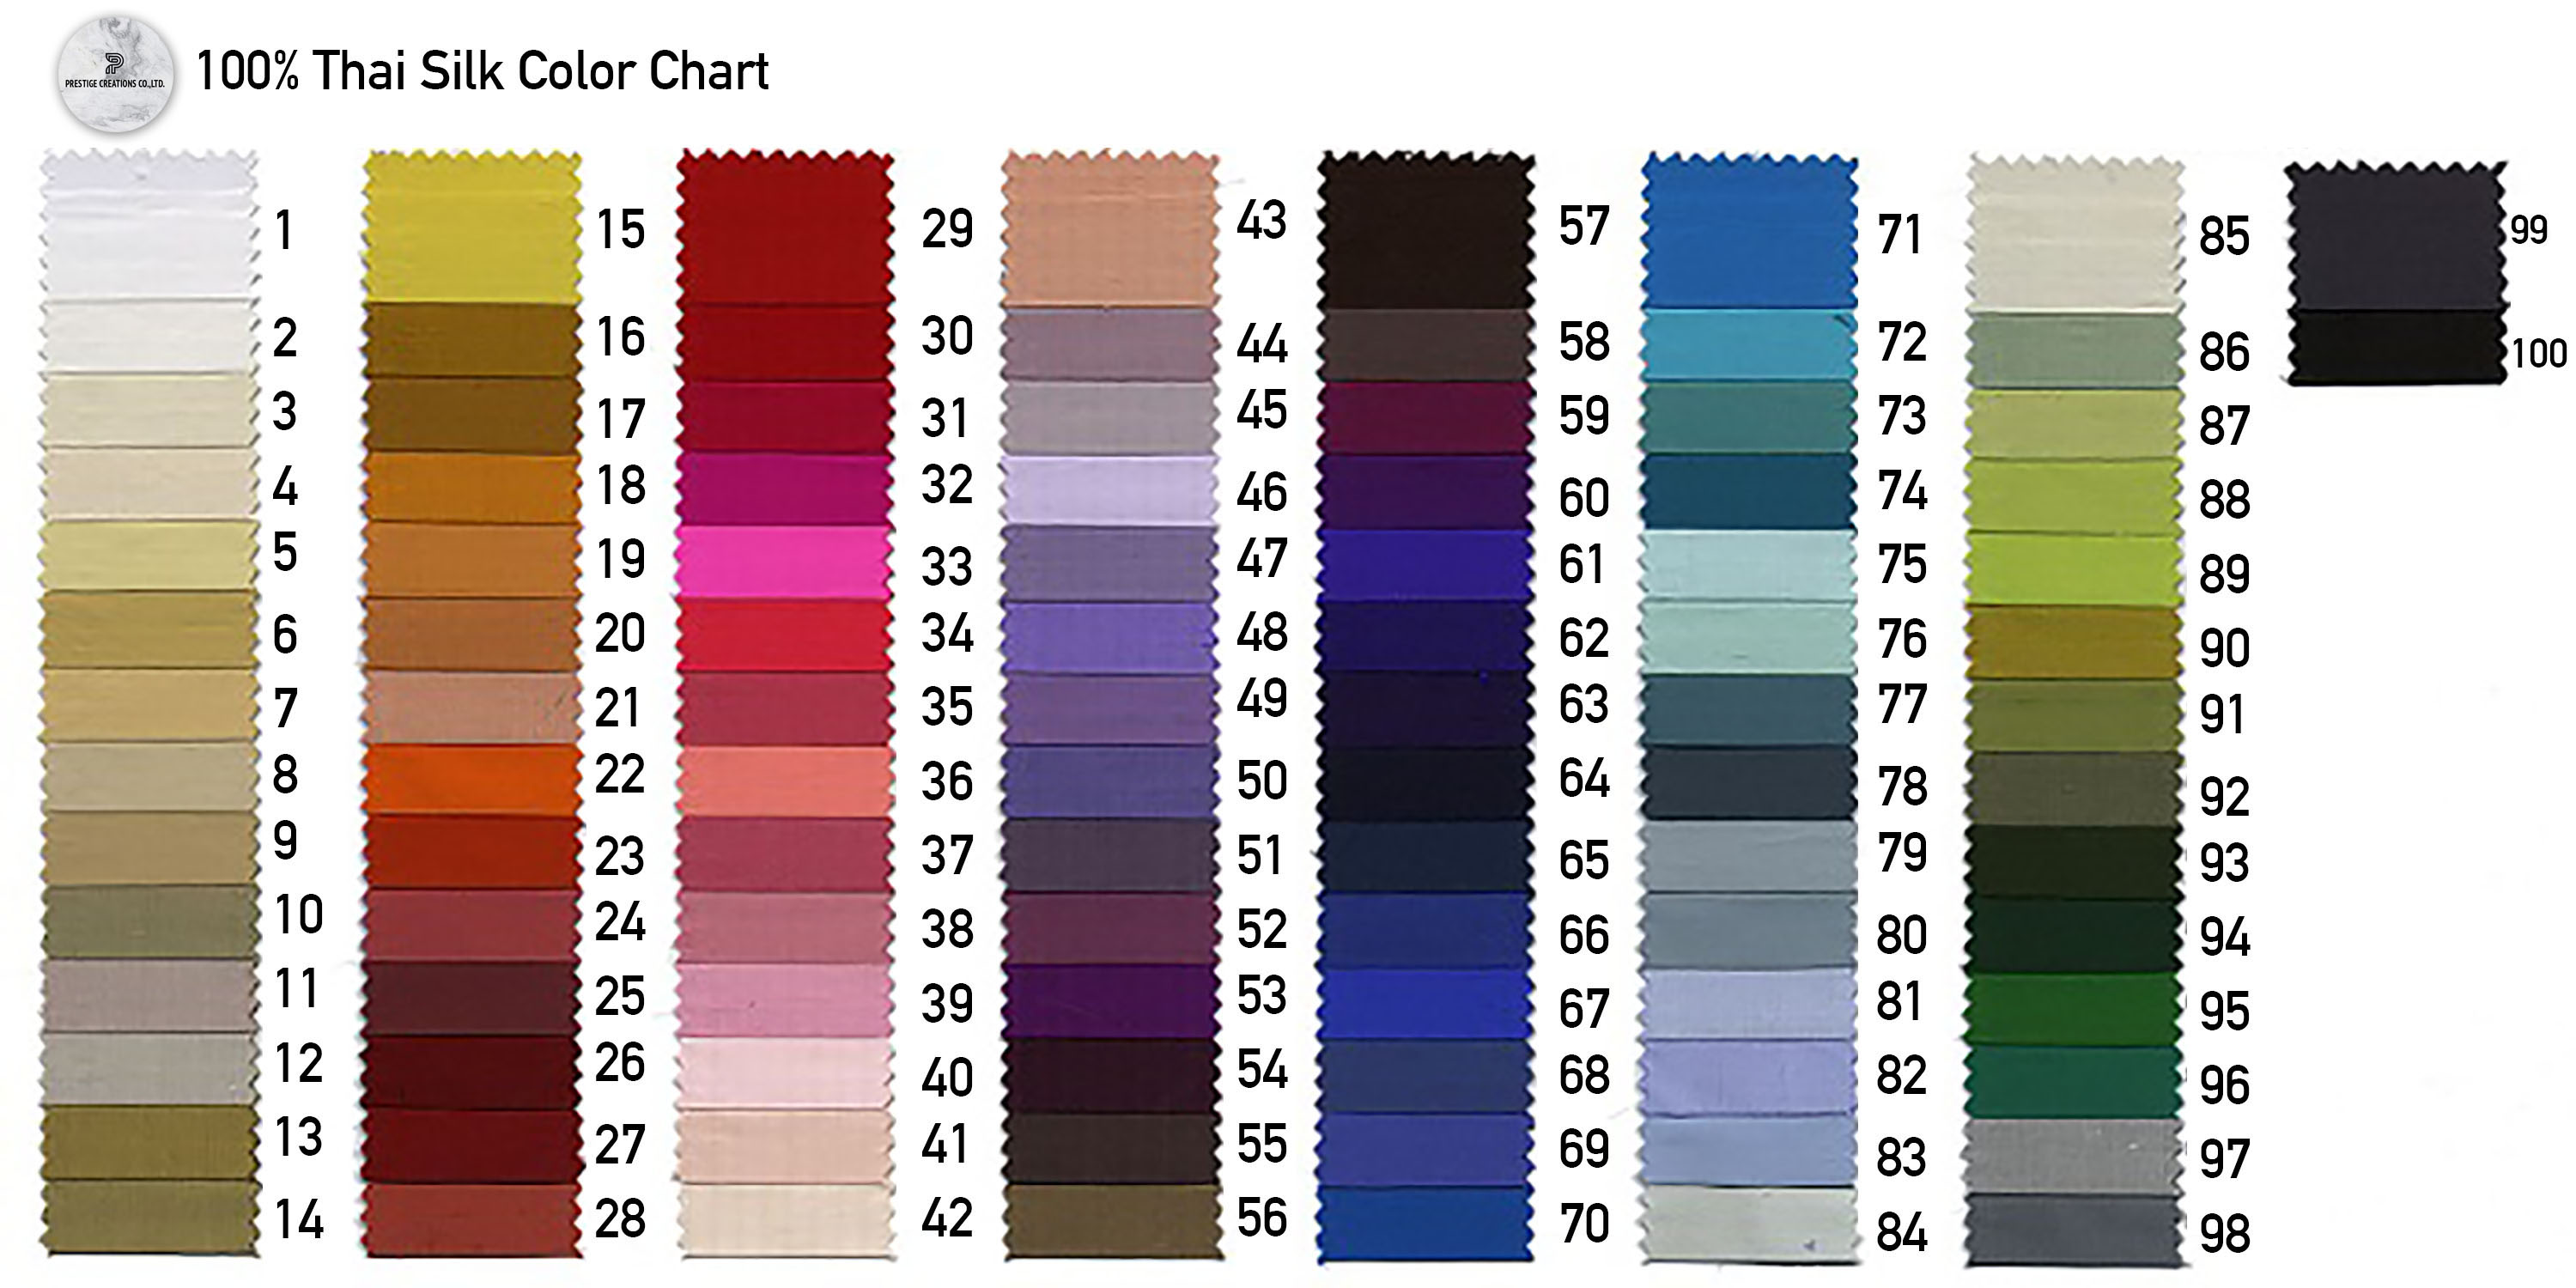 100% Thai silk color chart